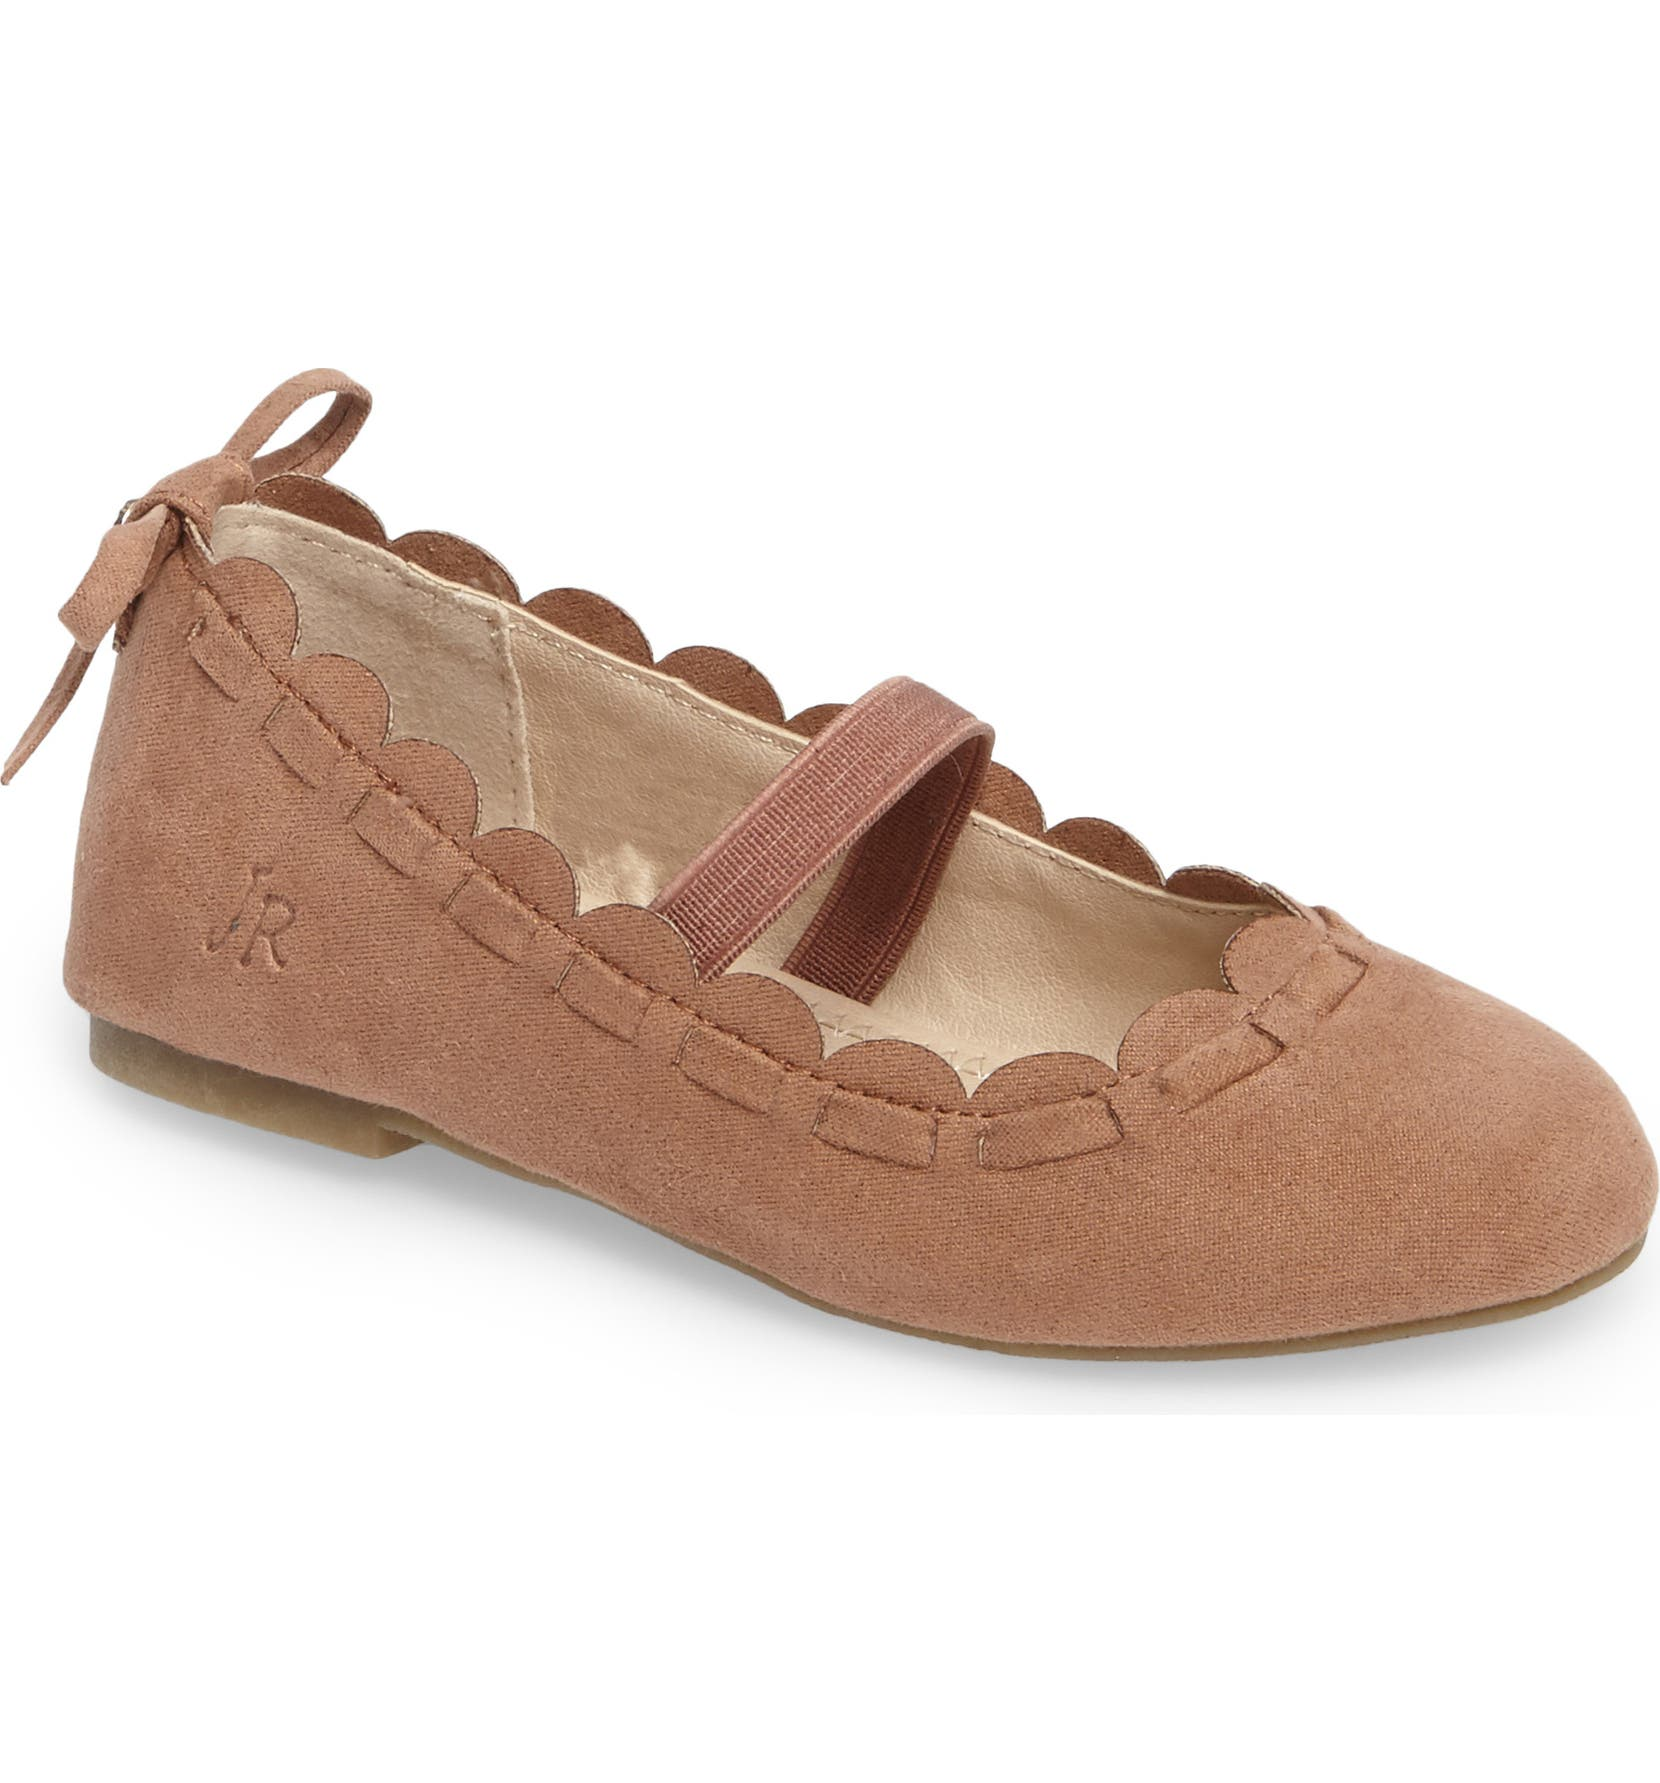 5829cd802a8 Jack Rogers Little Miss Lucie Scalloped Mary Jane Flat (Walker   Toddler)